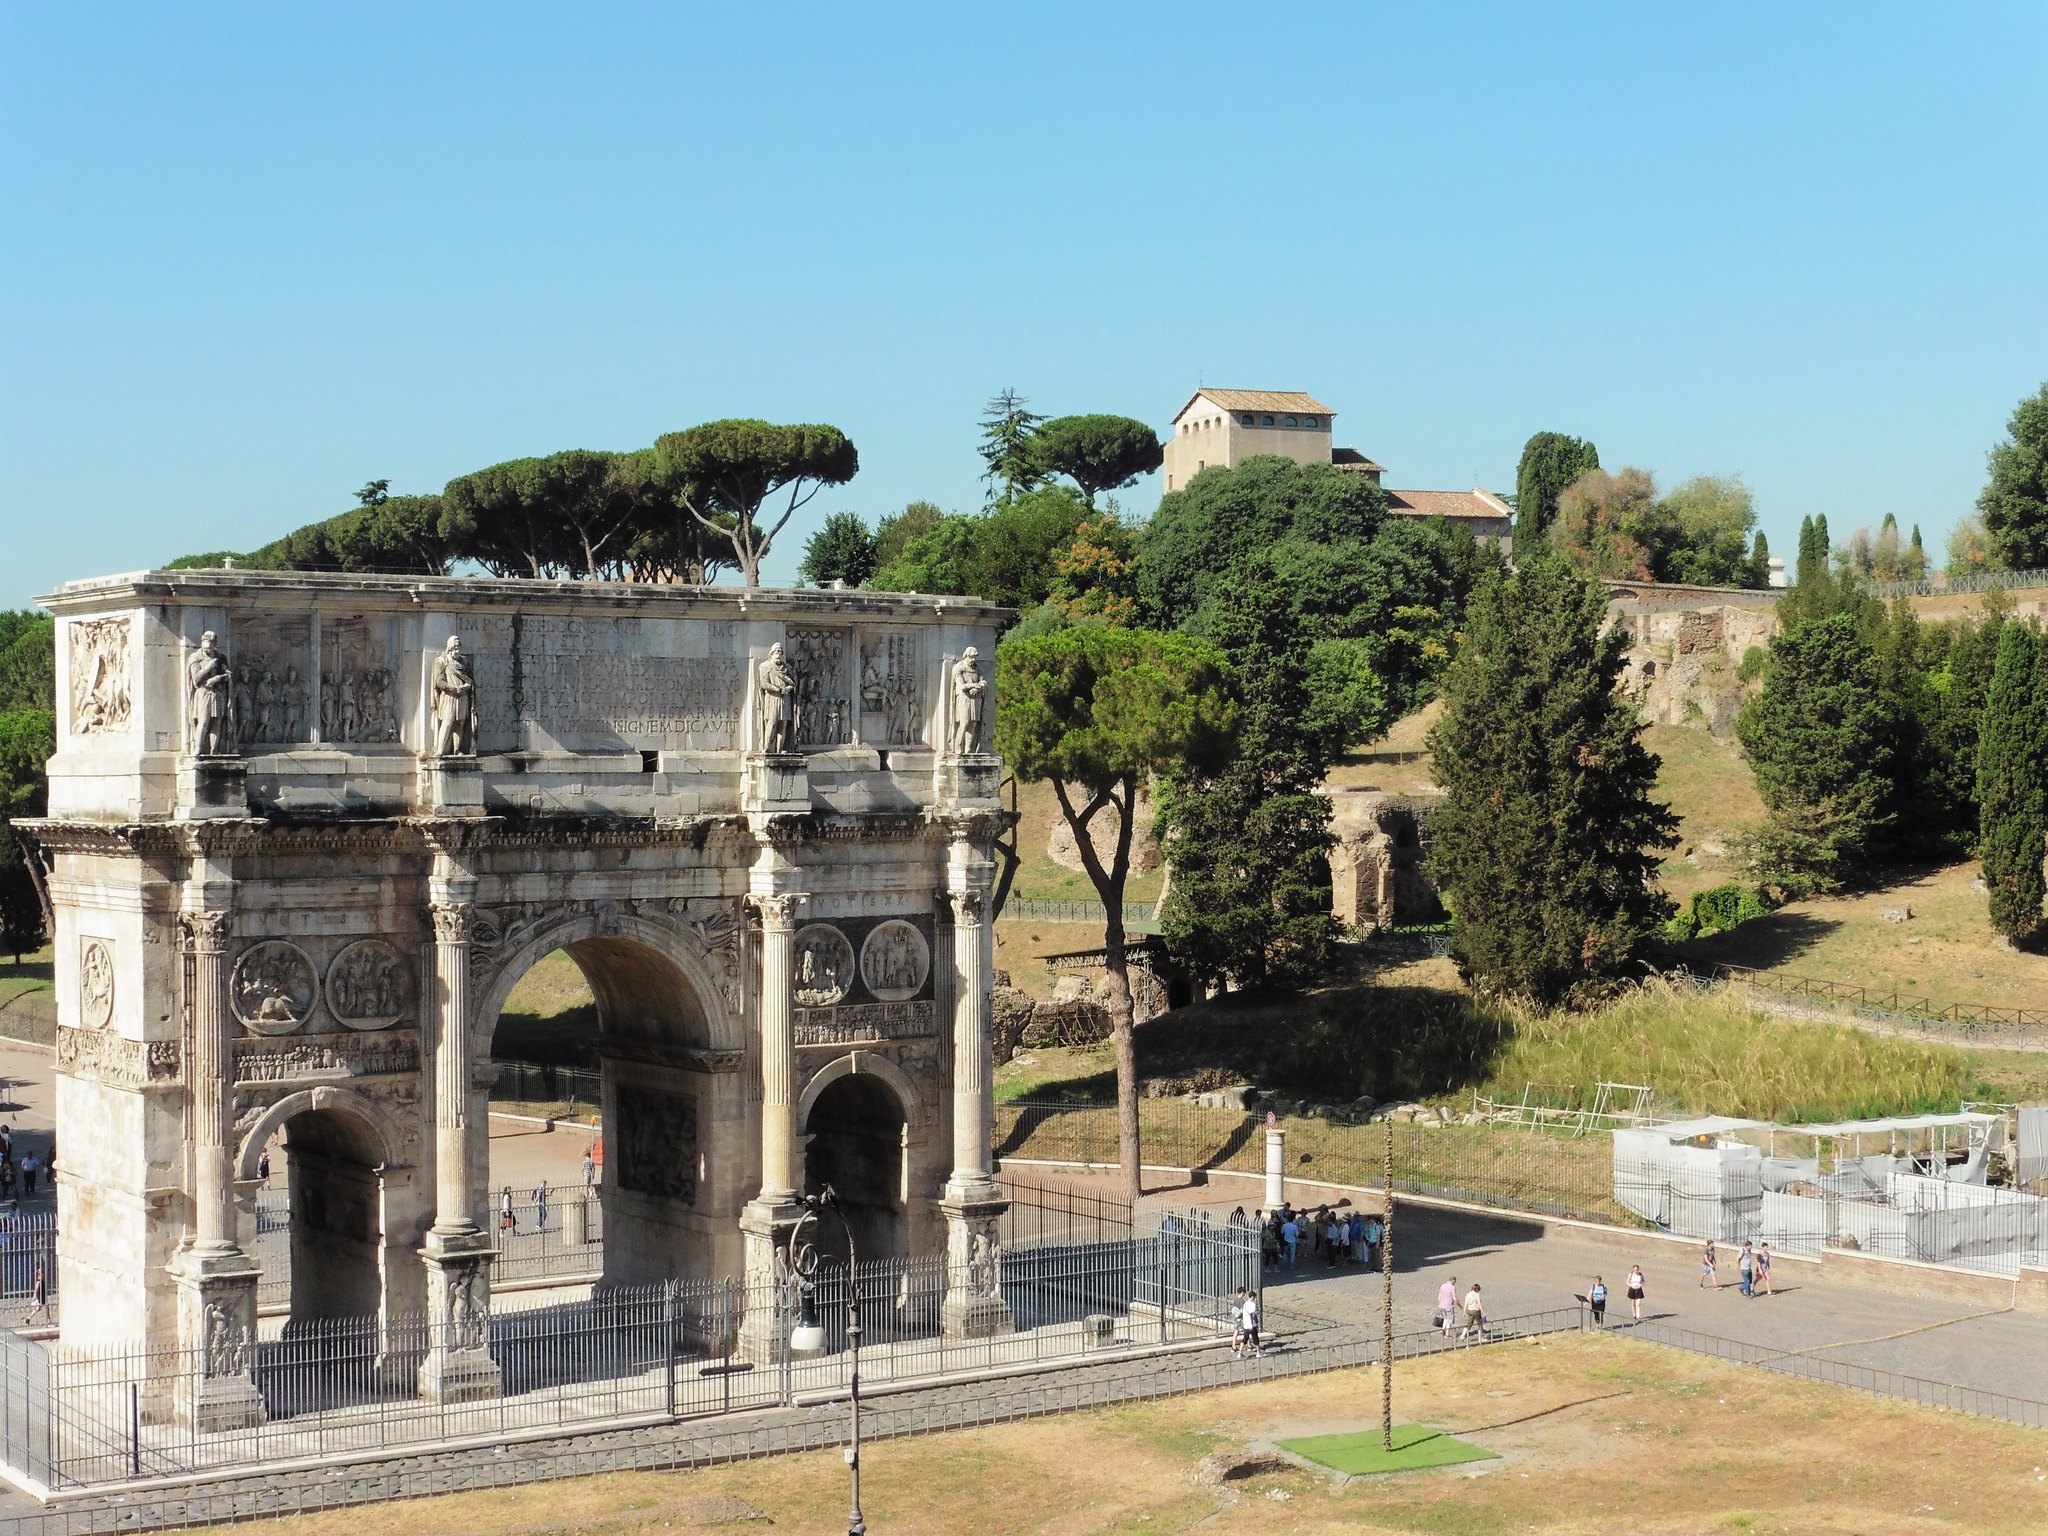 Archway near the Colosseum